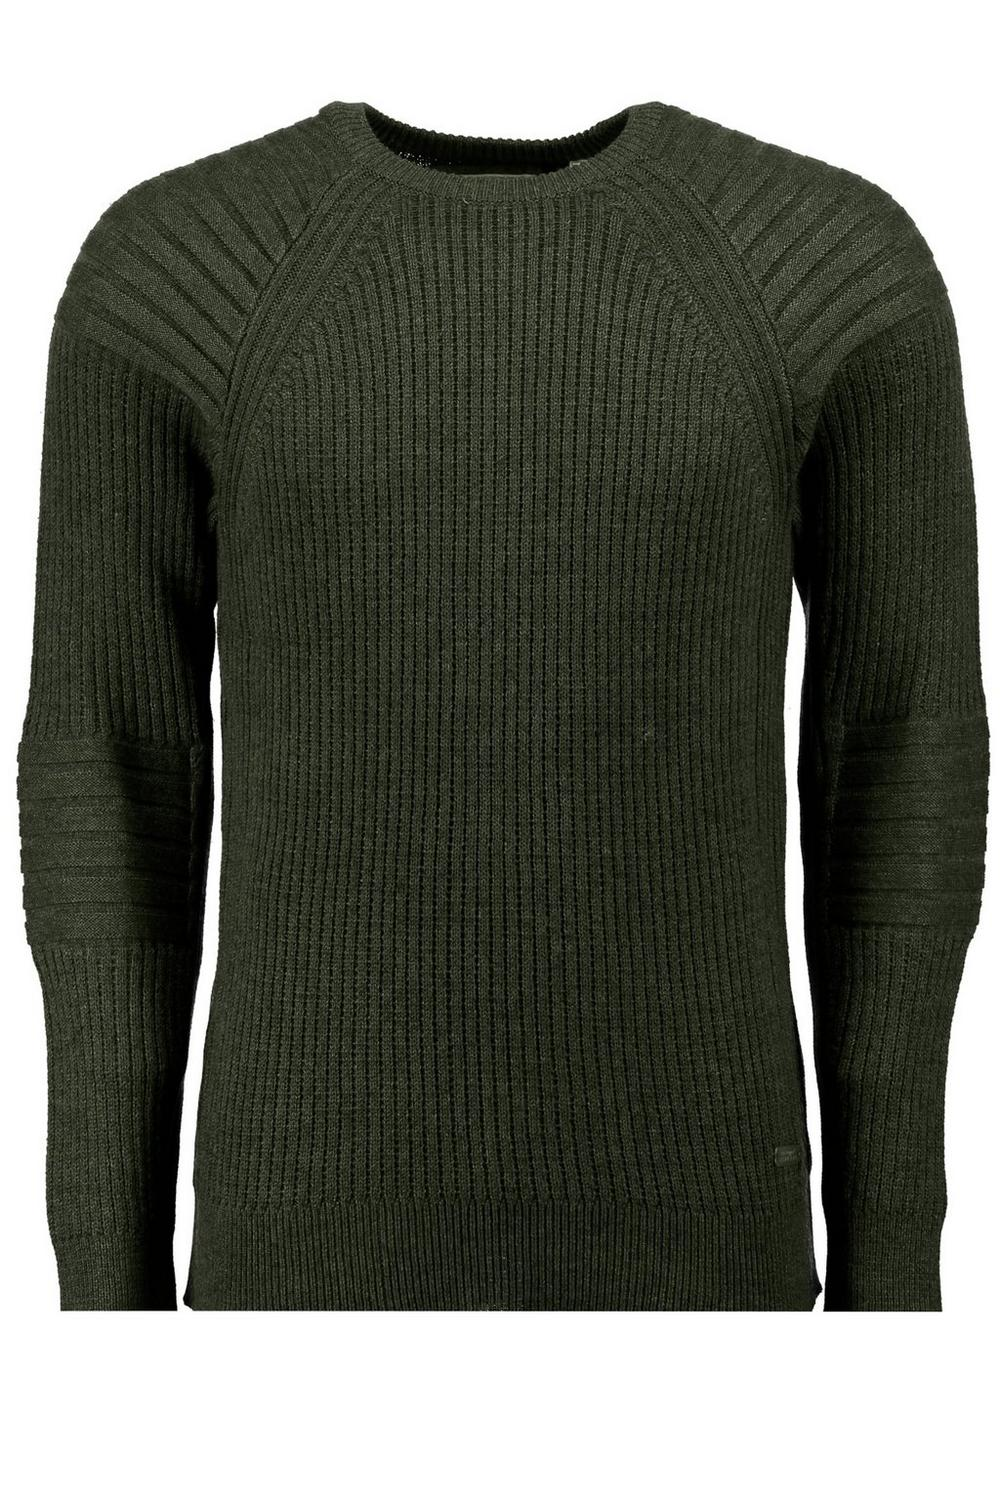 Heavy Fisherman Rib Crew Neck Sweater